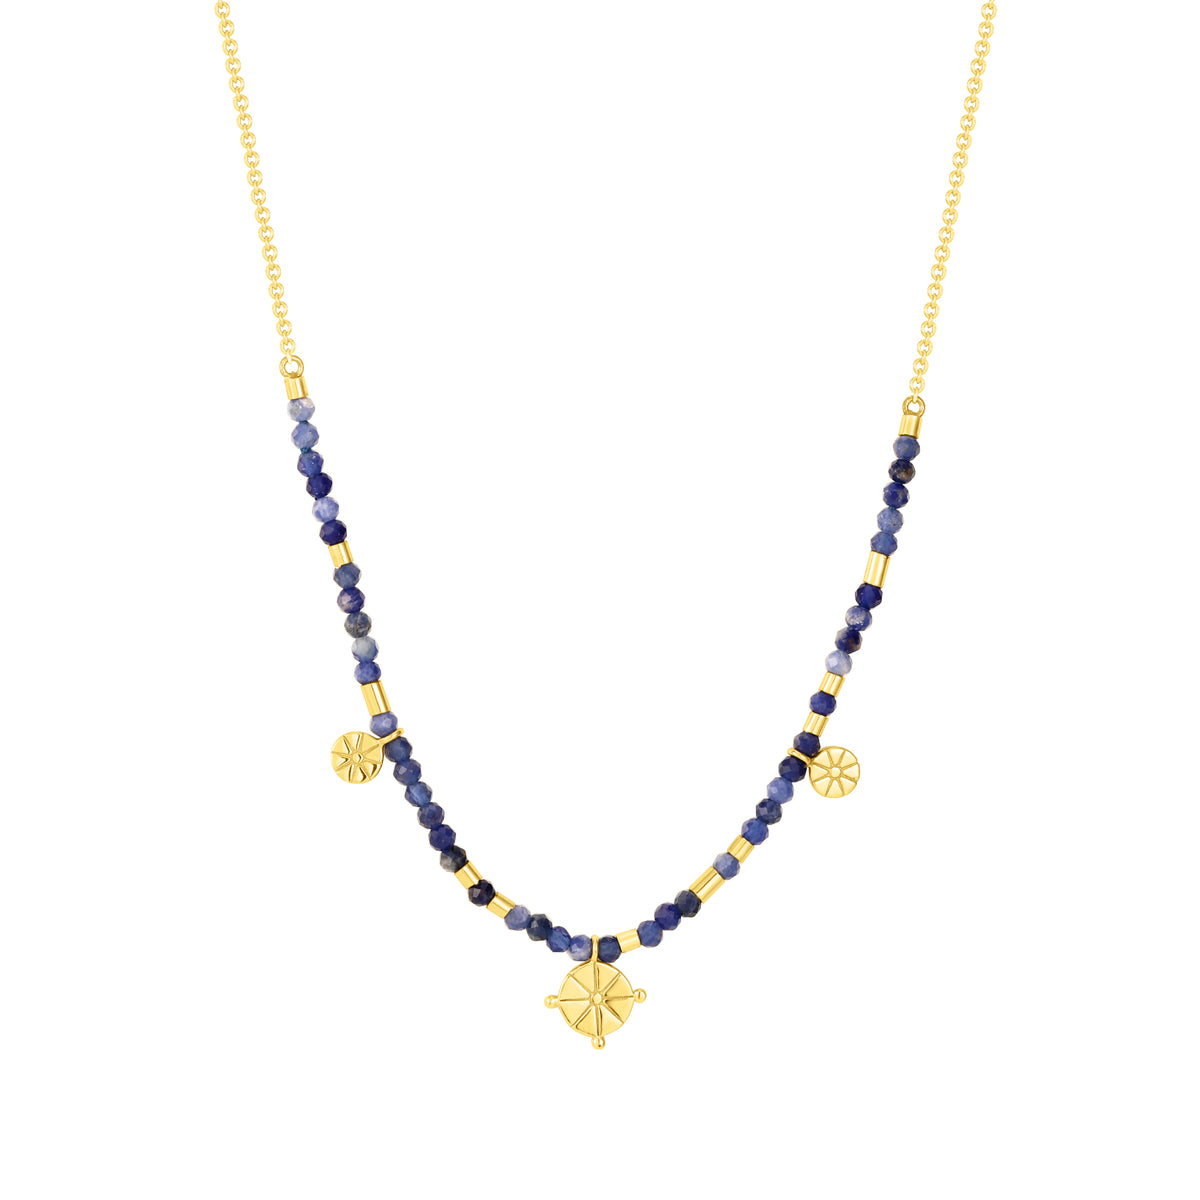 Spirito Rosa X Queen Dina Summer| River Necklace | 925 Silver | Blue-Vein Stone | 14K Gold Plated